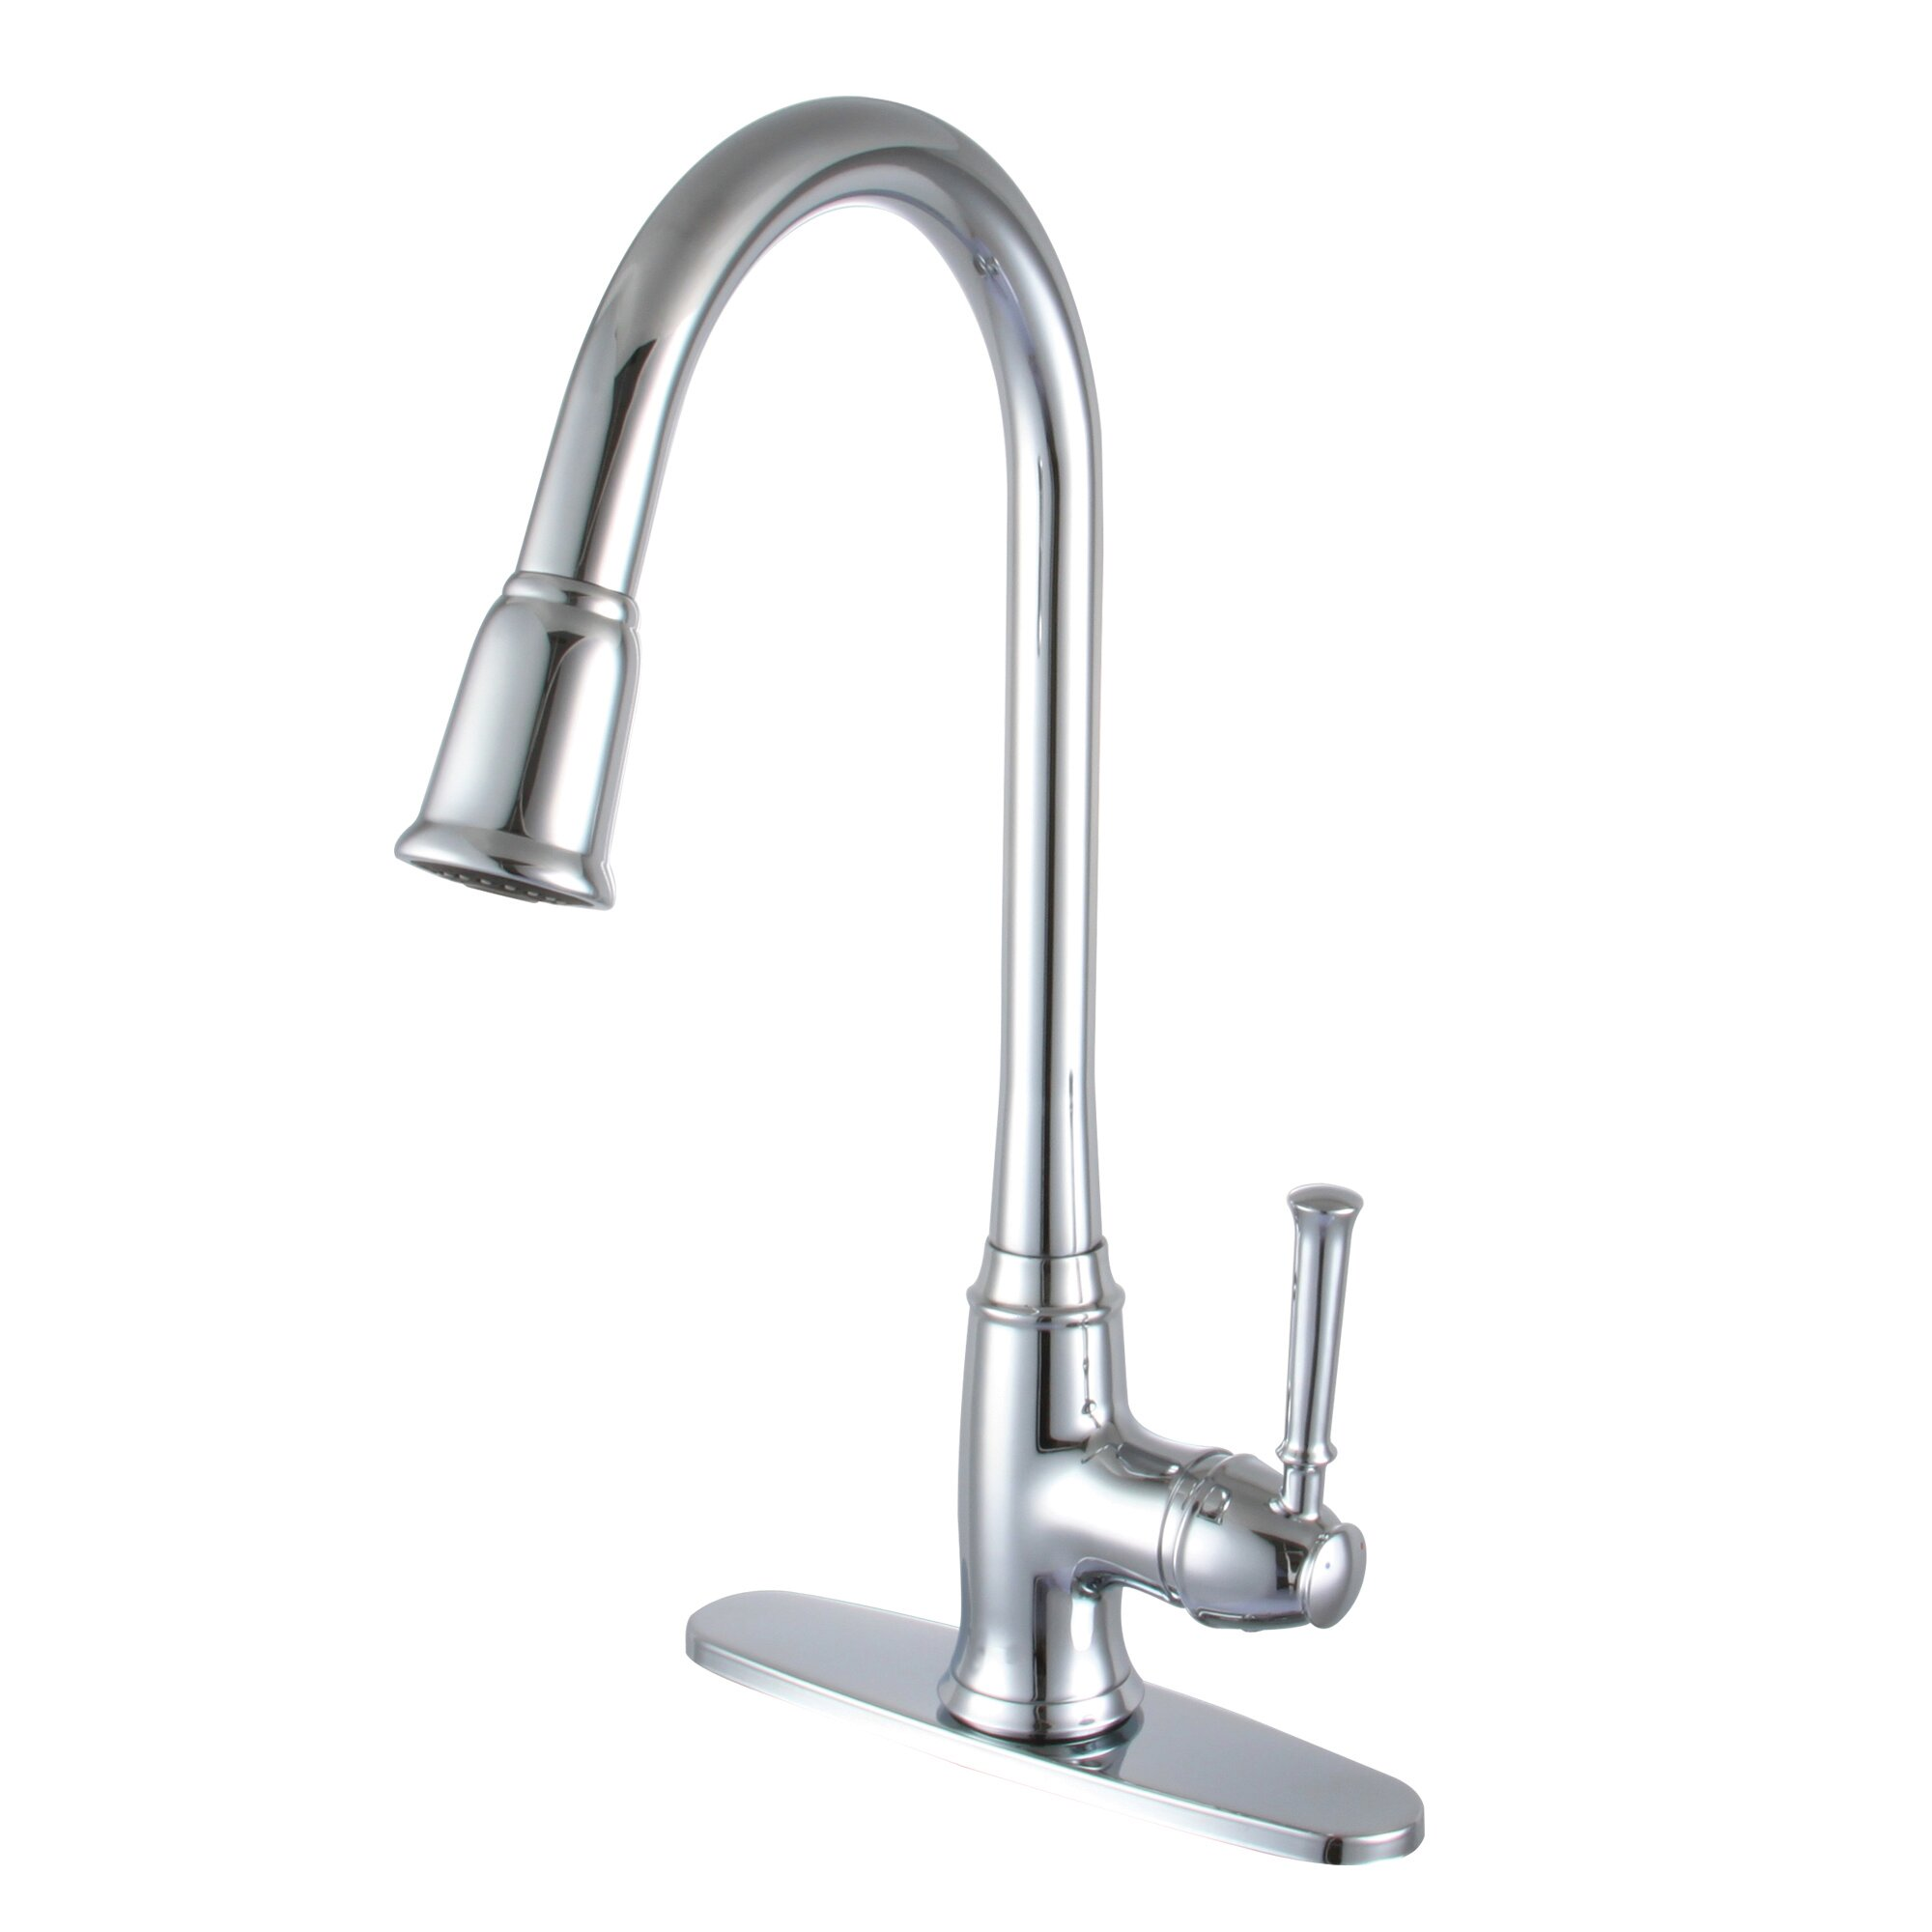 yosemite home decor single handle deck kitchen faucet